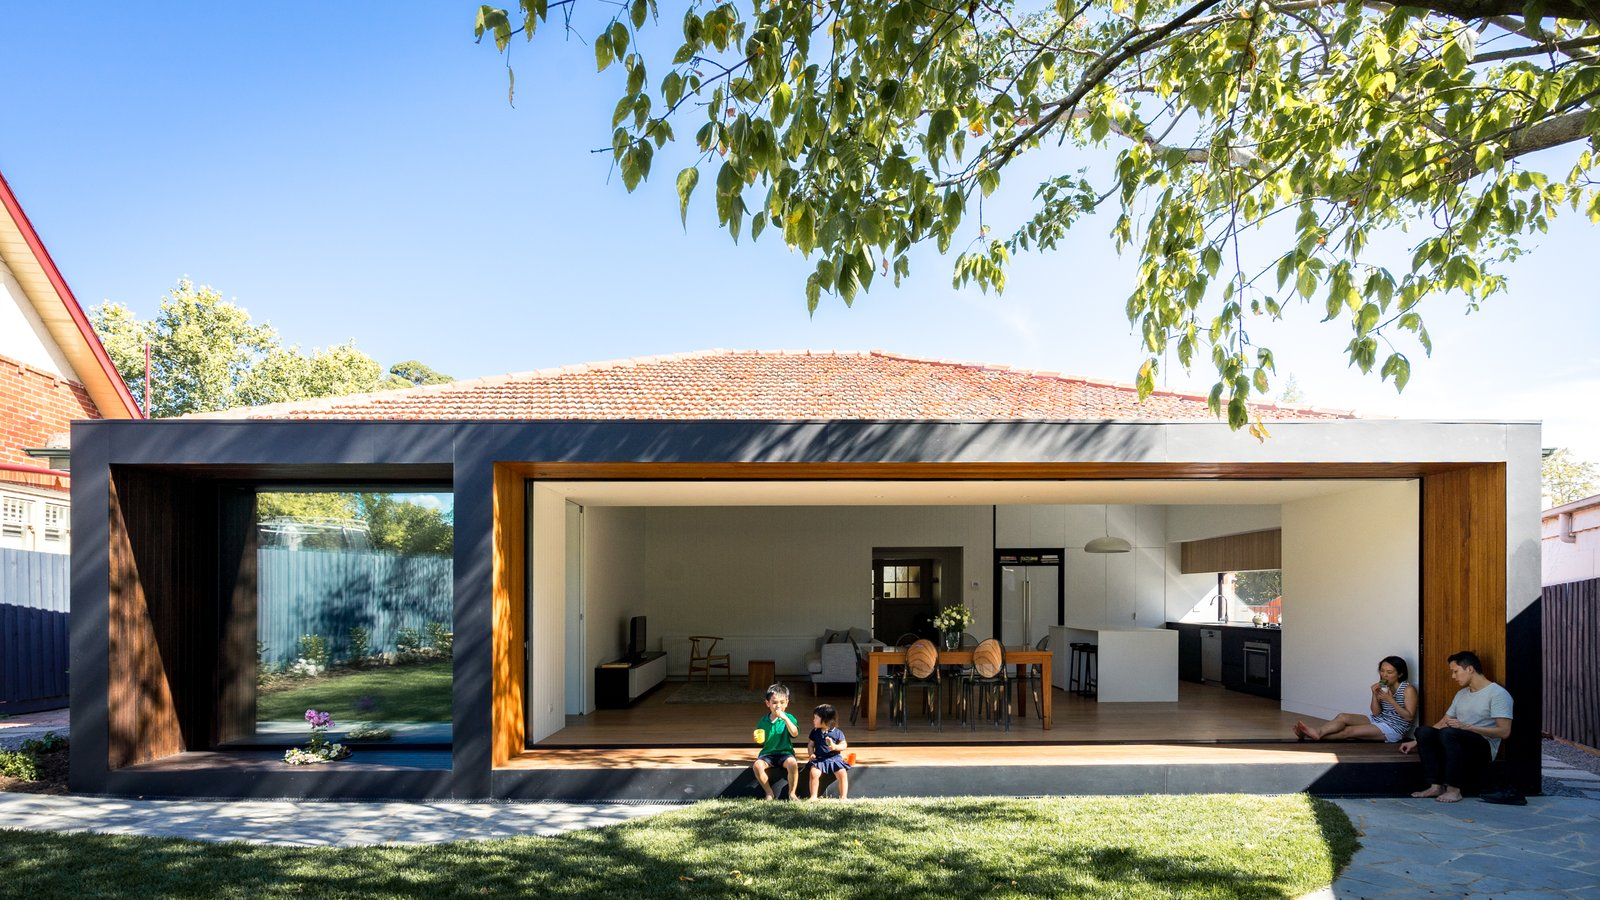 A Melbourne Home Decreases in Size to Amp Up Its Outdoor Connection